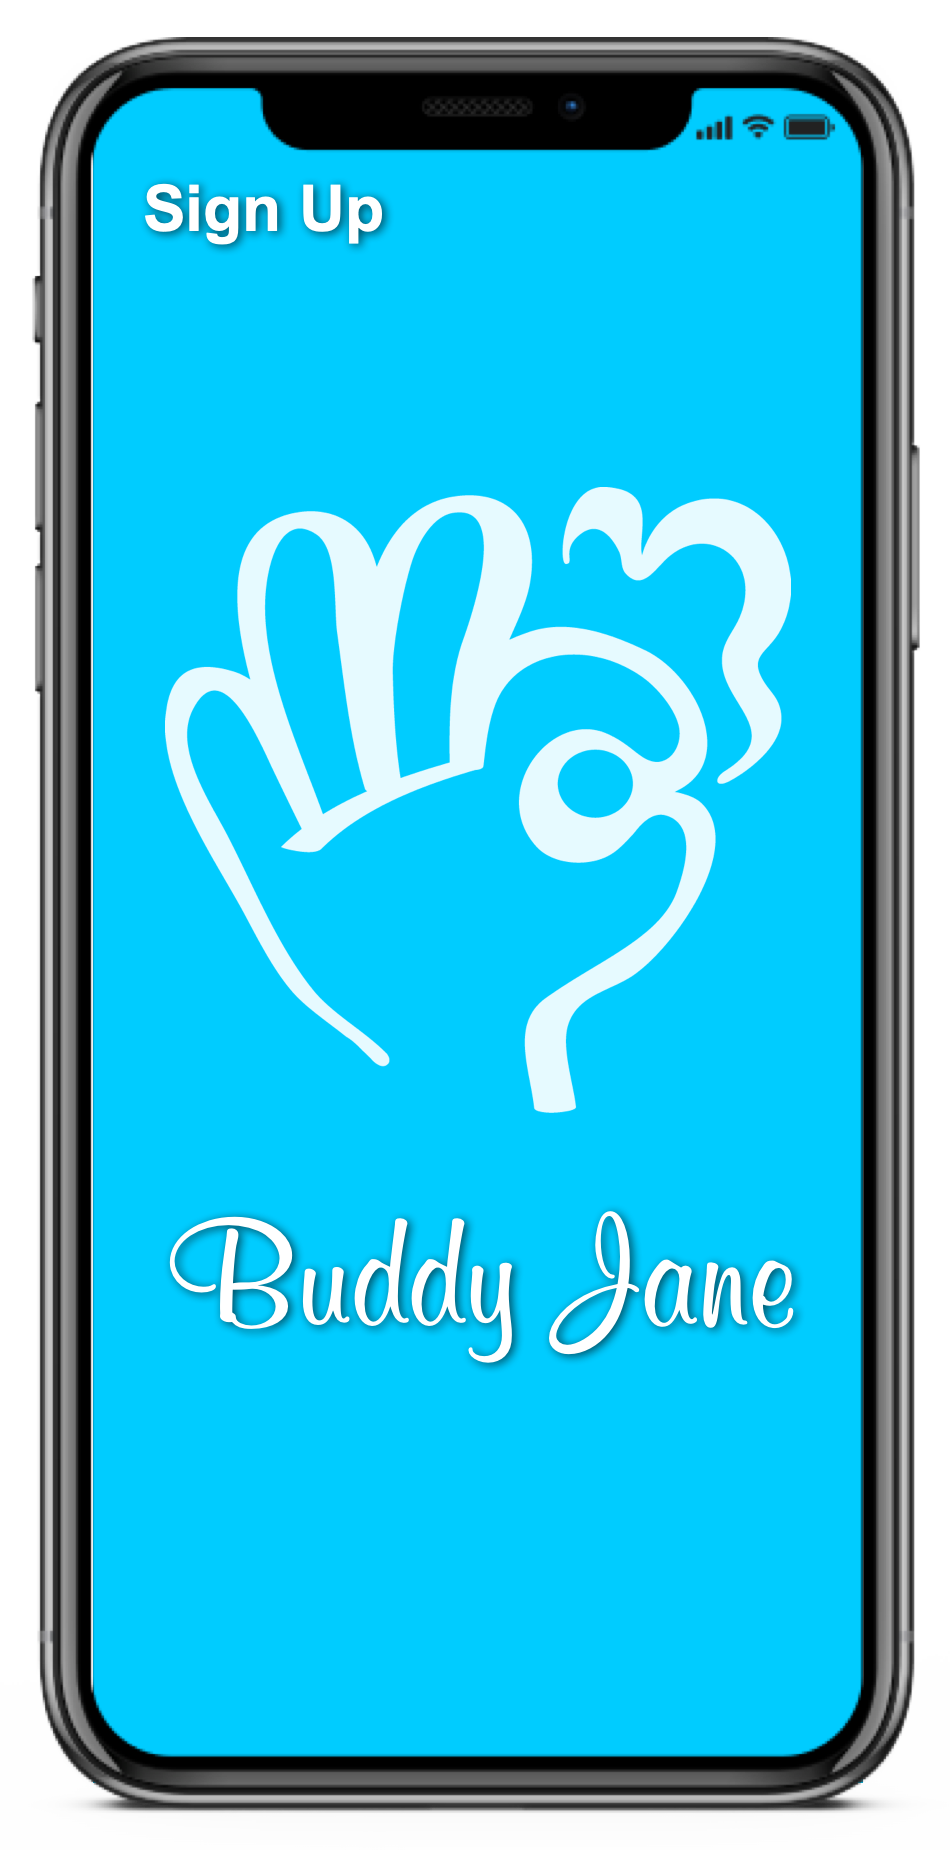 the front page of the Buddy Jane App. It depicts the Buddy Jane logo in white in front of a blue background.